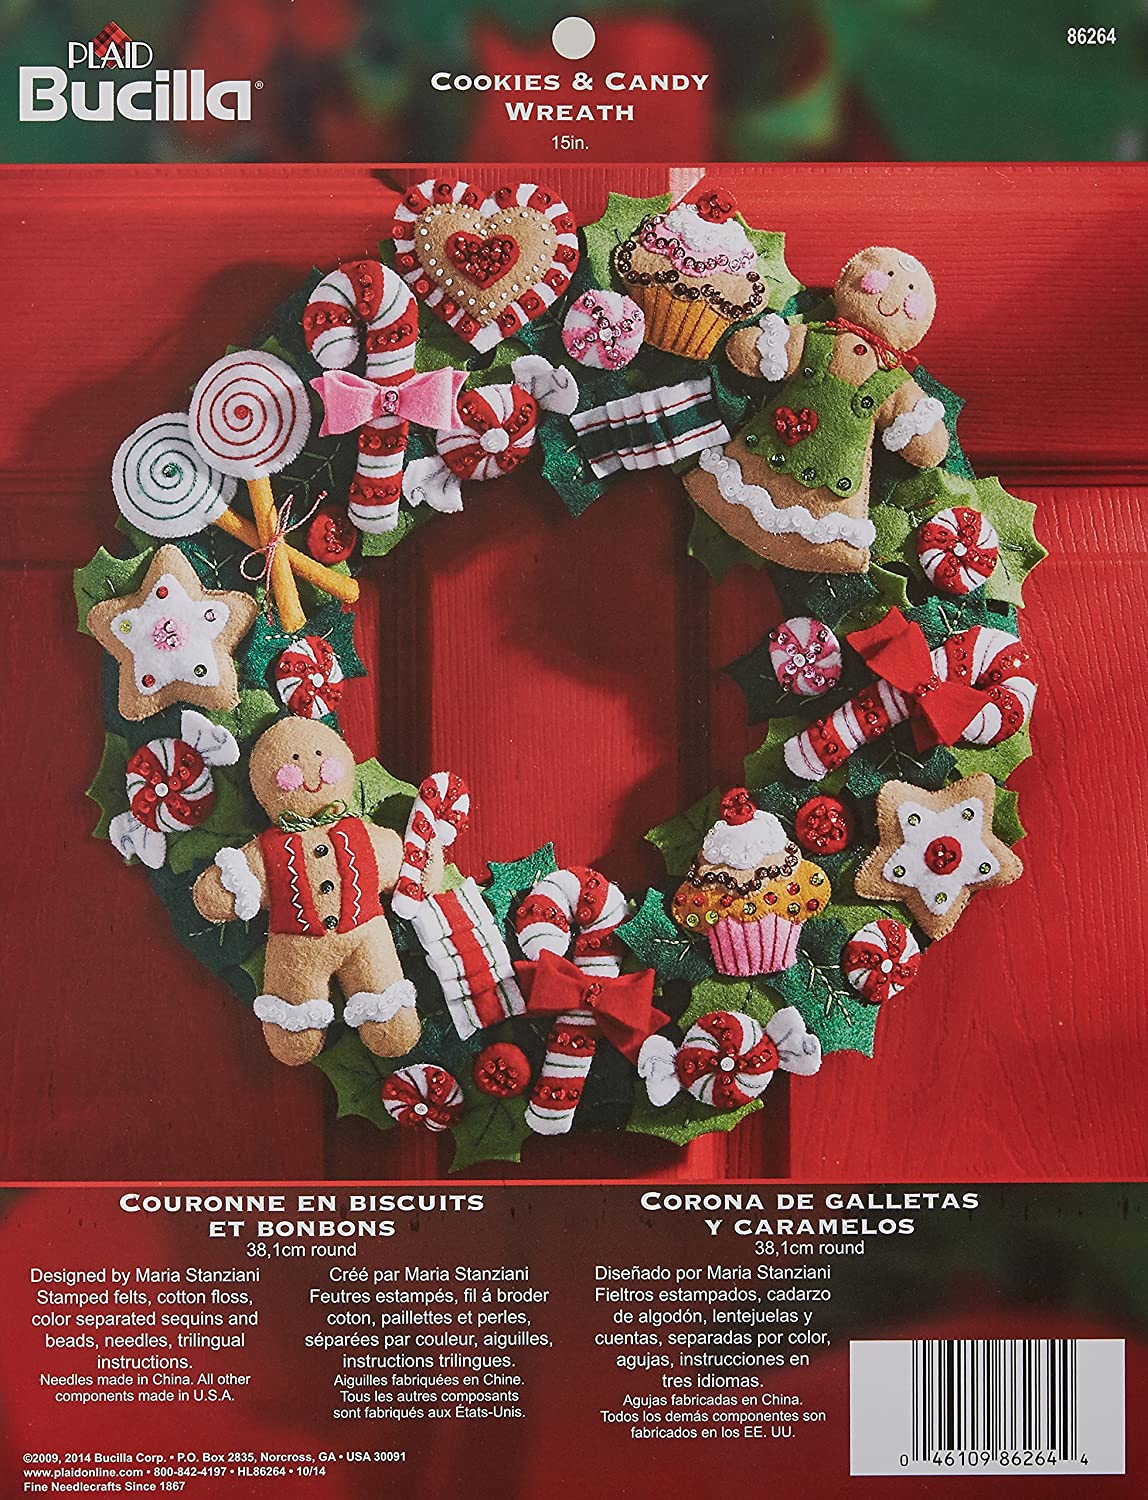 Bucilla festive felt wreath kit for Christmas